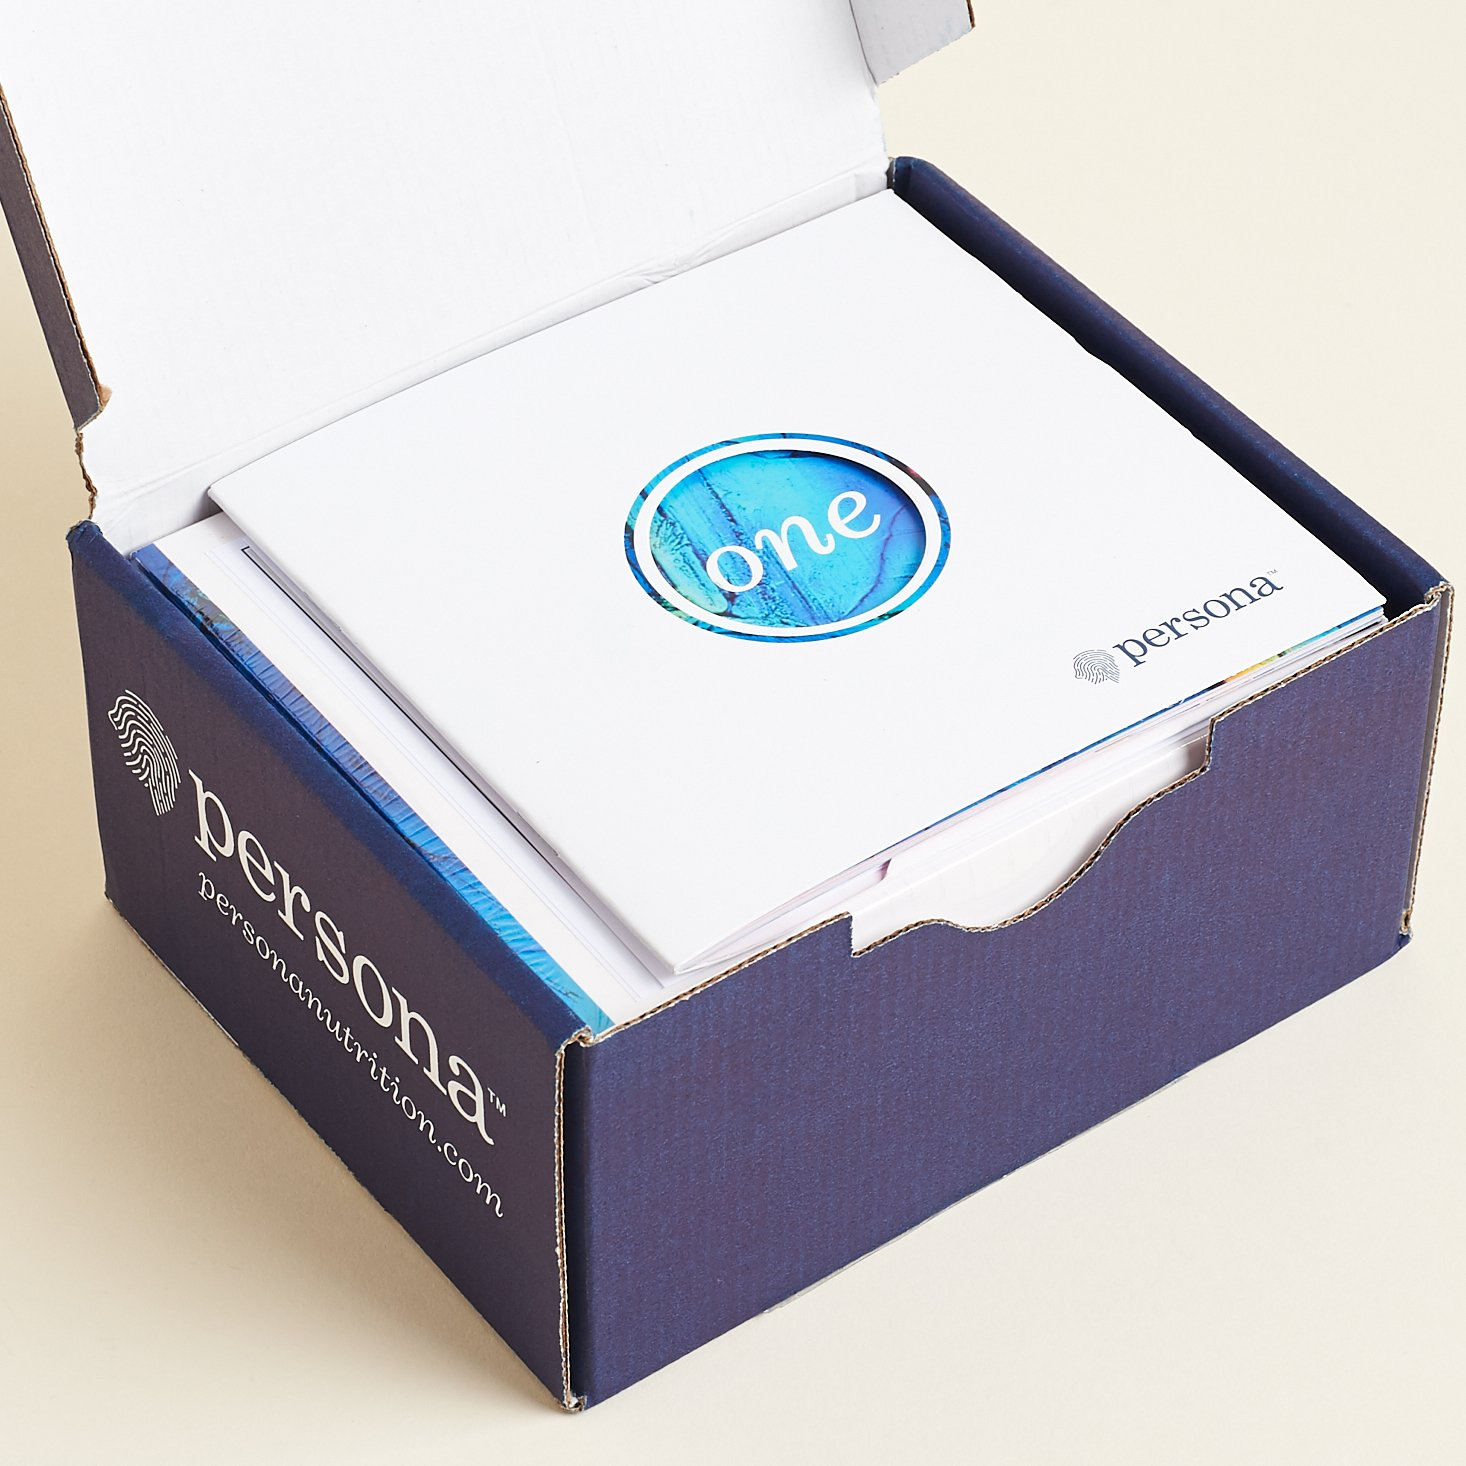 Open Persona box with booklet on top